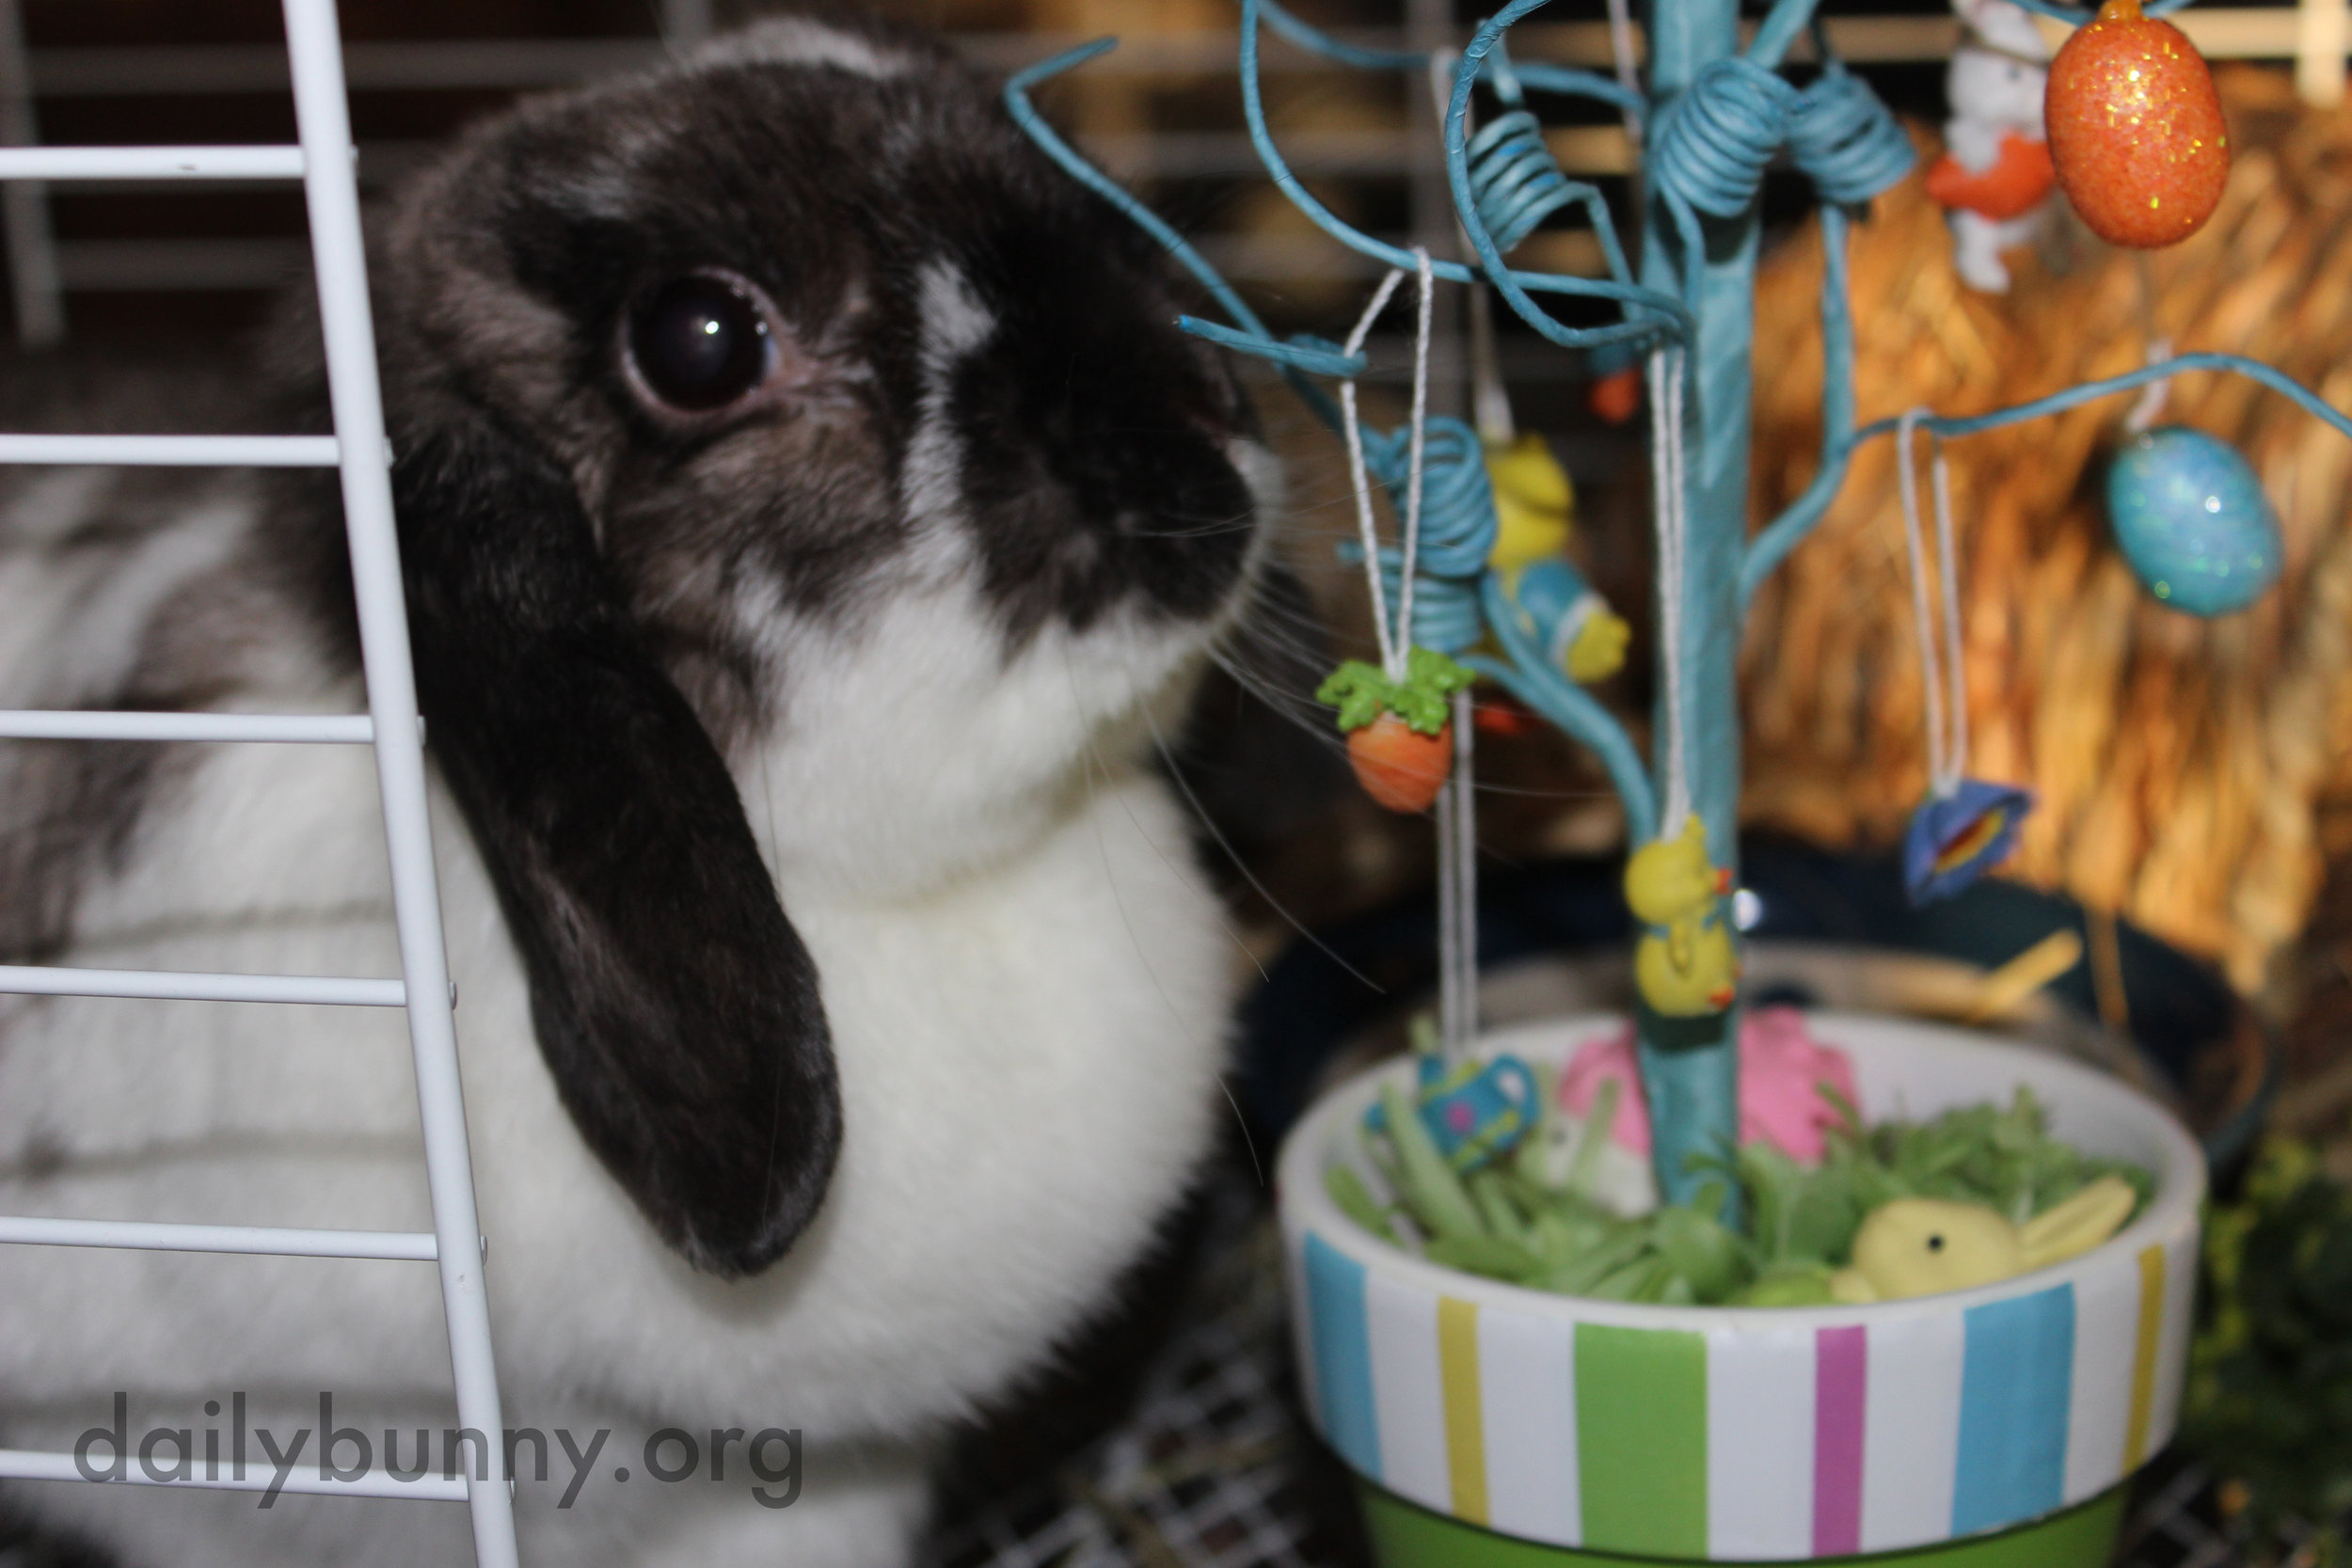 The Daily Bunny's Easter 2014 Mega-Post! 10